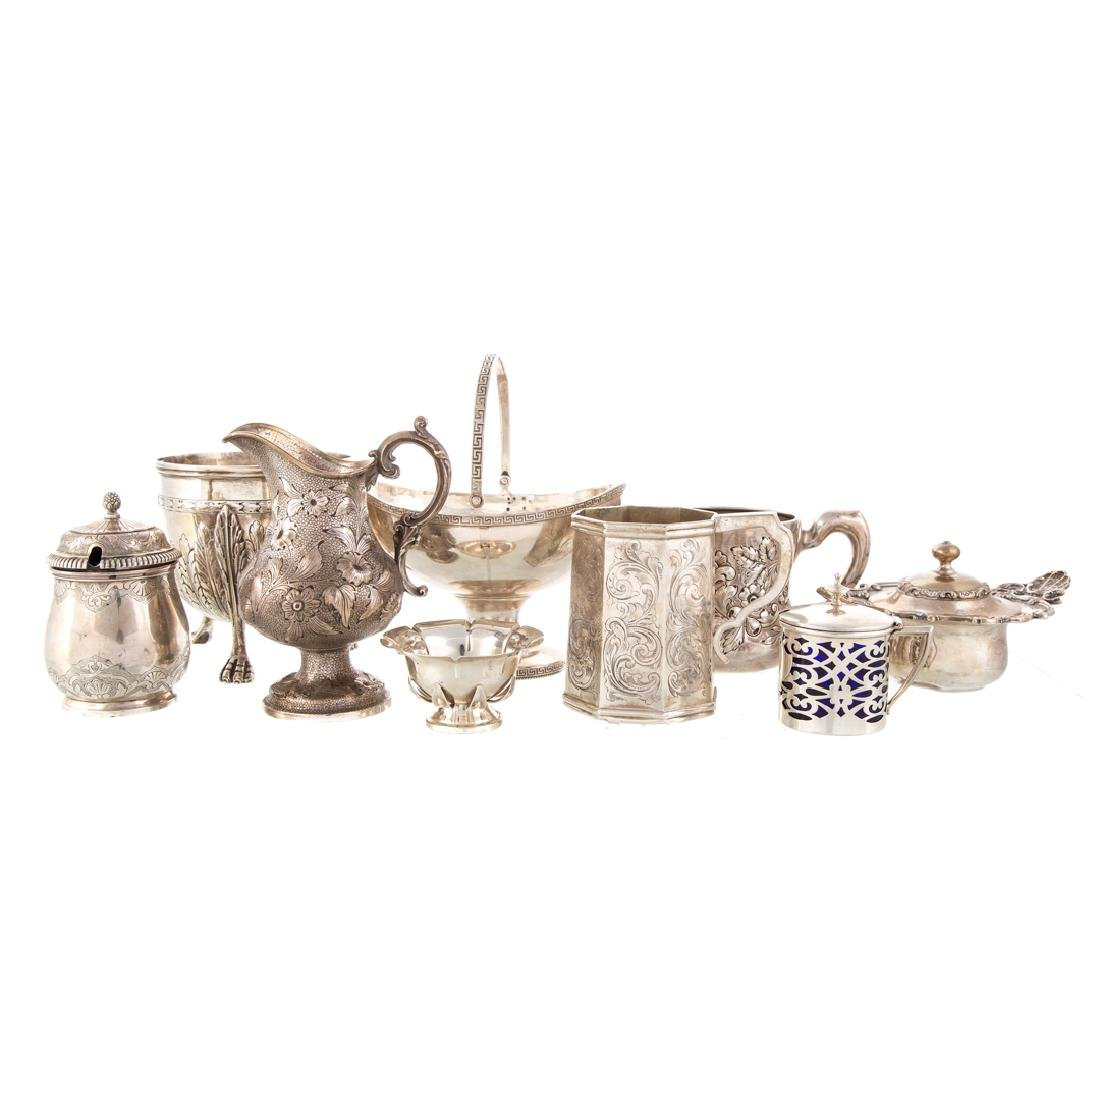 American & Continental silver hollowware (7)